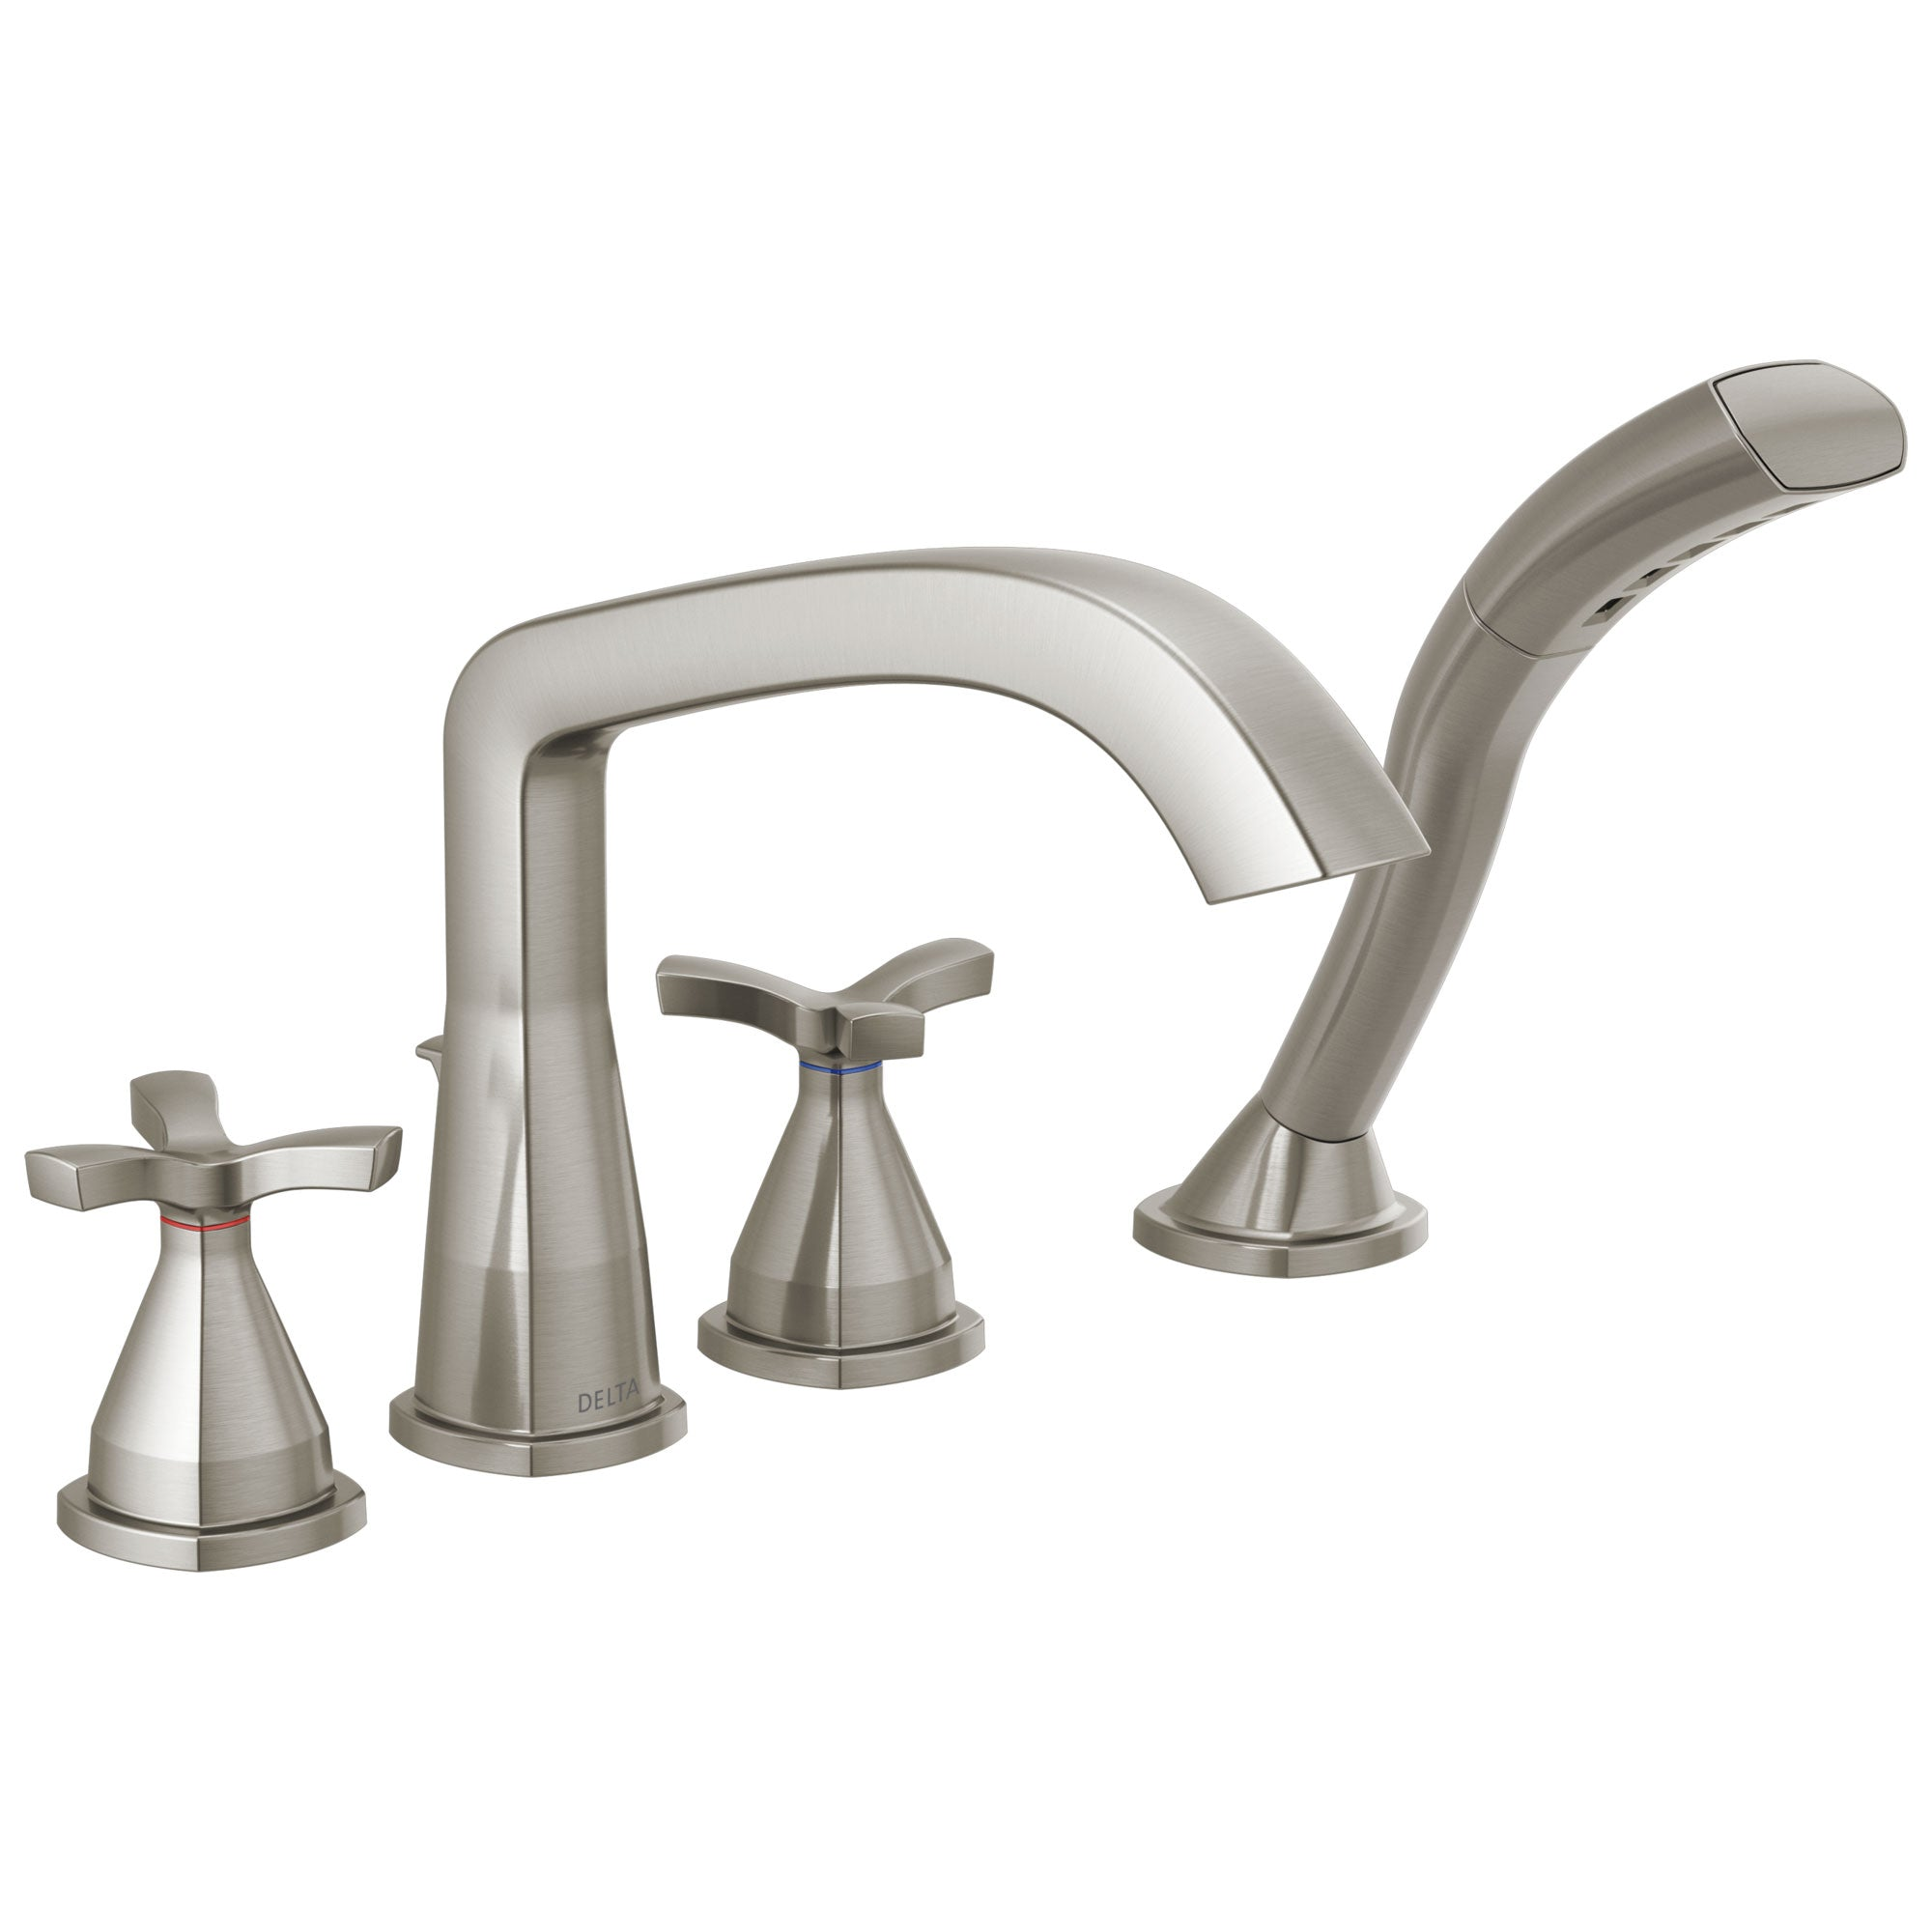 Delta Stryke Stainless Steel Finish Helo Cross Handle Deck Mount Roman Tub Filler Faucet with Hand Shower Includes Rough-in Valve D3042V